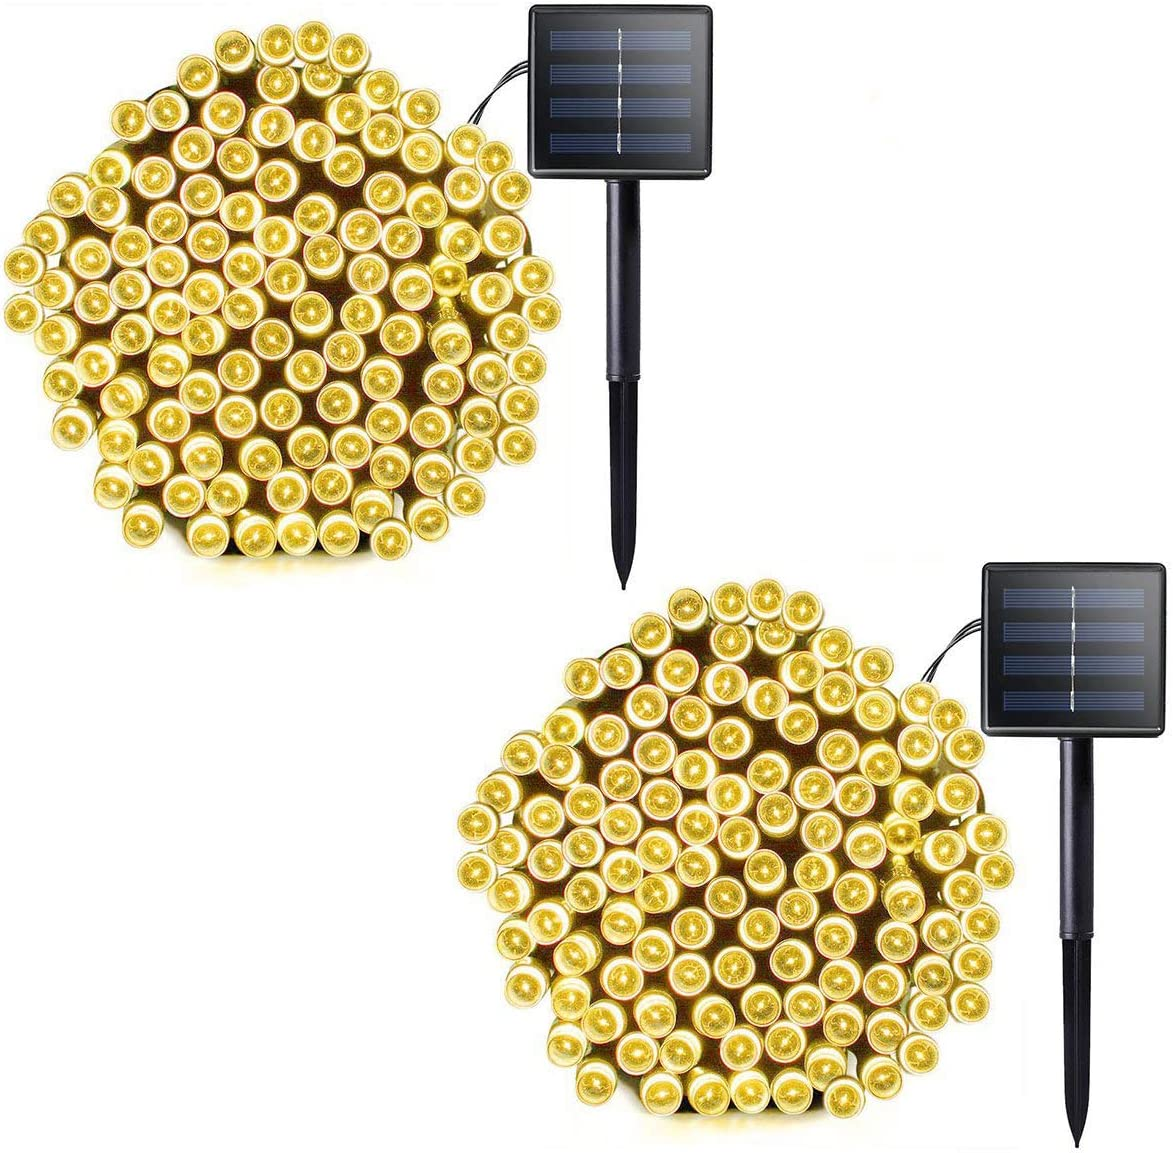 Lalapao 2 Pack Solar String Lights 72ft 22m 200 LED 8 Modes Solar Powered Outdoor Lighting Waterproof Christmas Fairy Lights for Xmas Tree Garden Homes Ambiance Wedding Lawn Party Decor Warm White